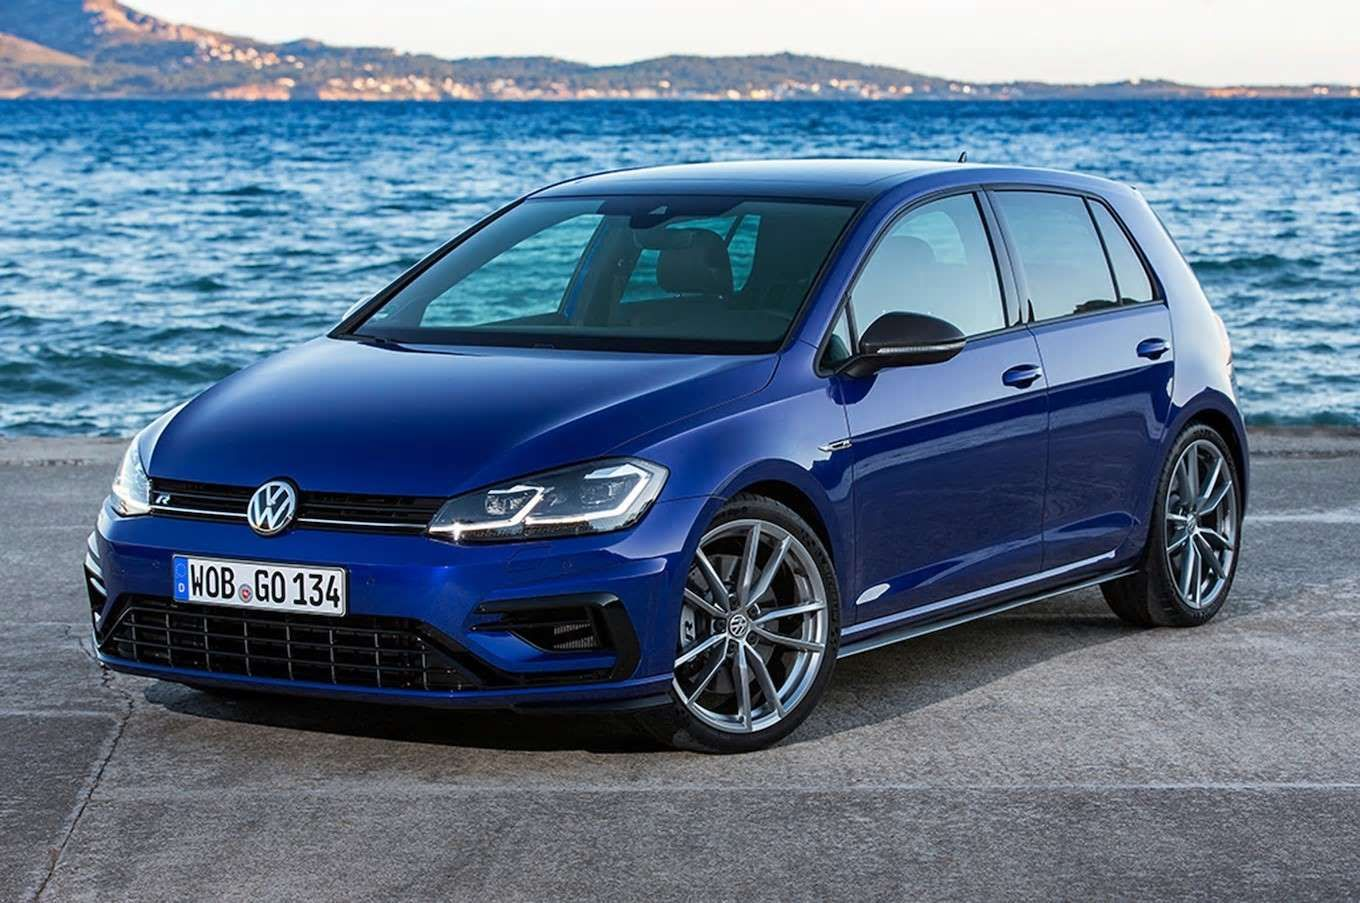 Base Price 22 000 41 000 Body Type Hatchbackminor Our 2015 Car Of The Year Enters 2019 With Upd Motor Tr Volkswagen Golf Volkswagen Golf R Volkswagen